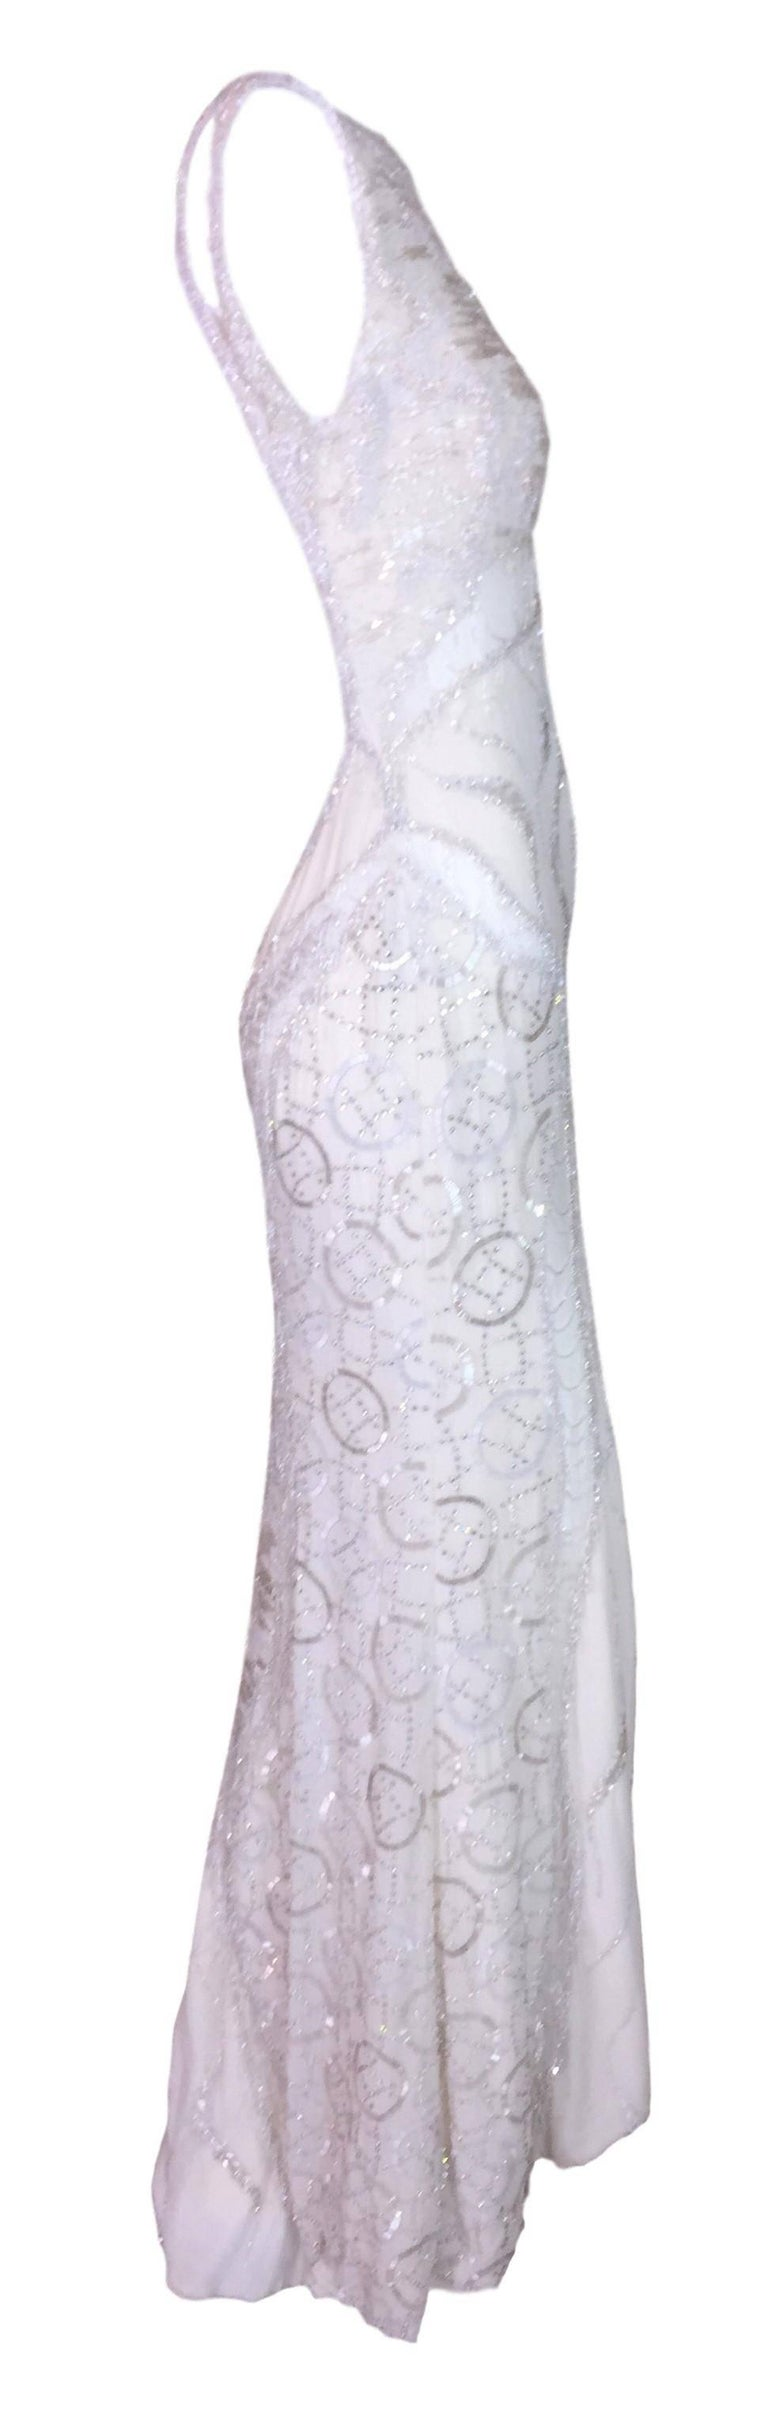 Atelier Versace Runway Sheer Ivory Bridal Wedding Beaded Gown Dress, F / W 1998  In Good Condition For Sale In Yukon, OK